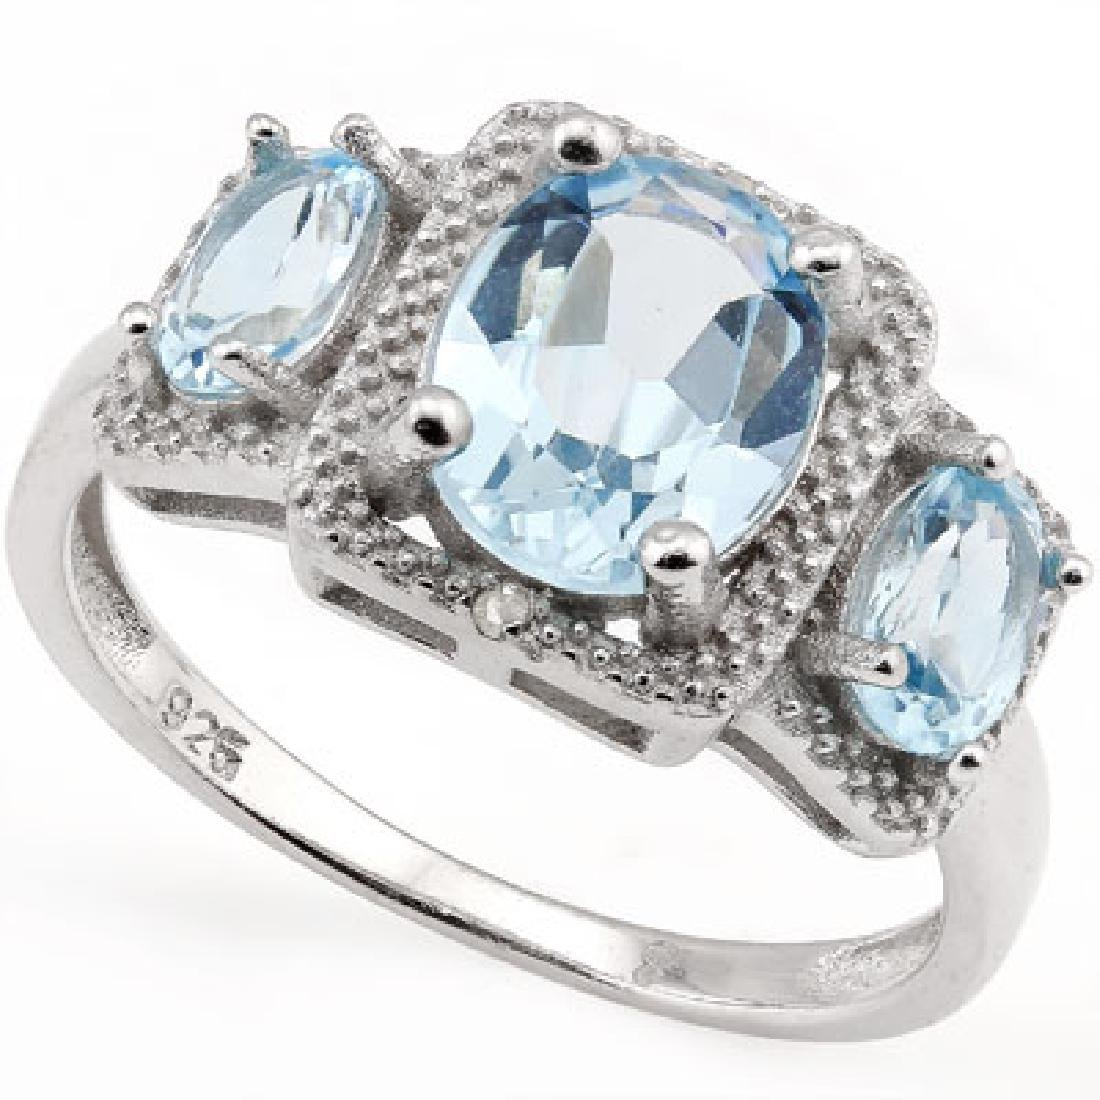 Large 3 Stone Sky Blue Topaz Art Deco Inspired Ring in